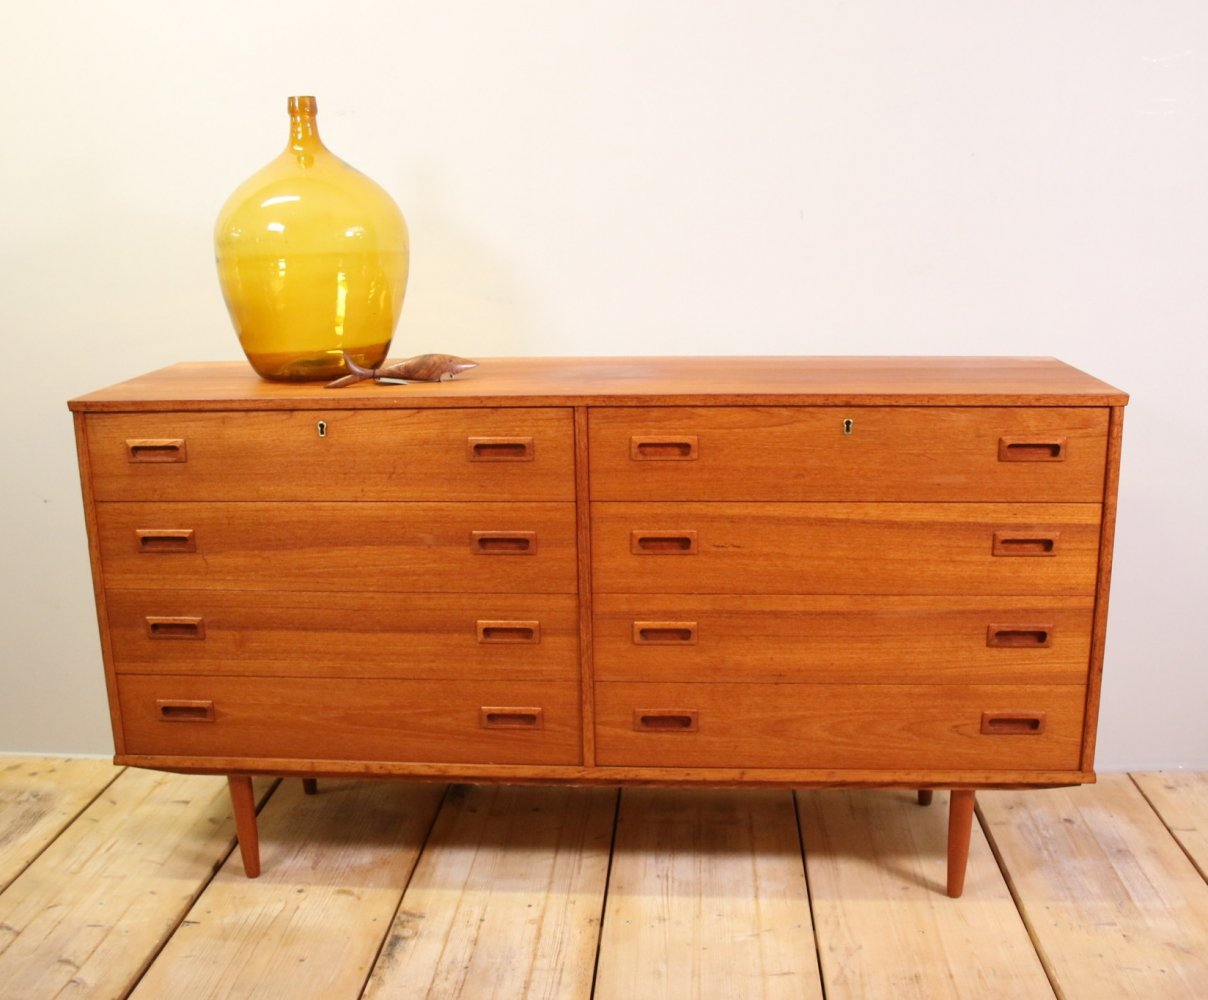 Danish Teak sideboard with 8 drawers, 1960s